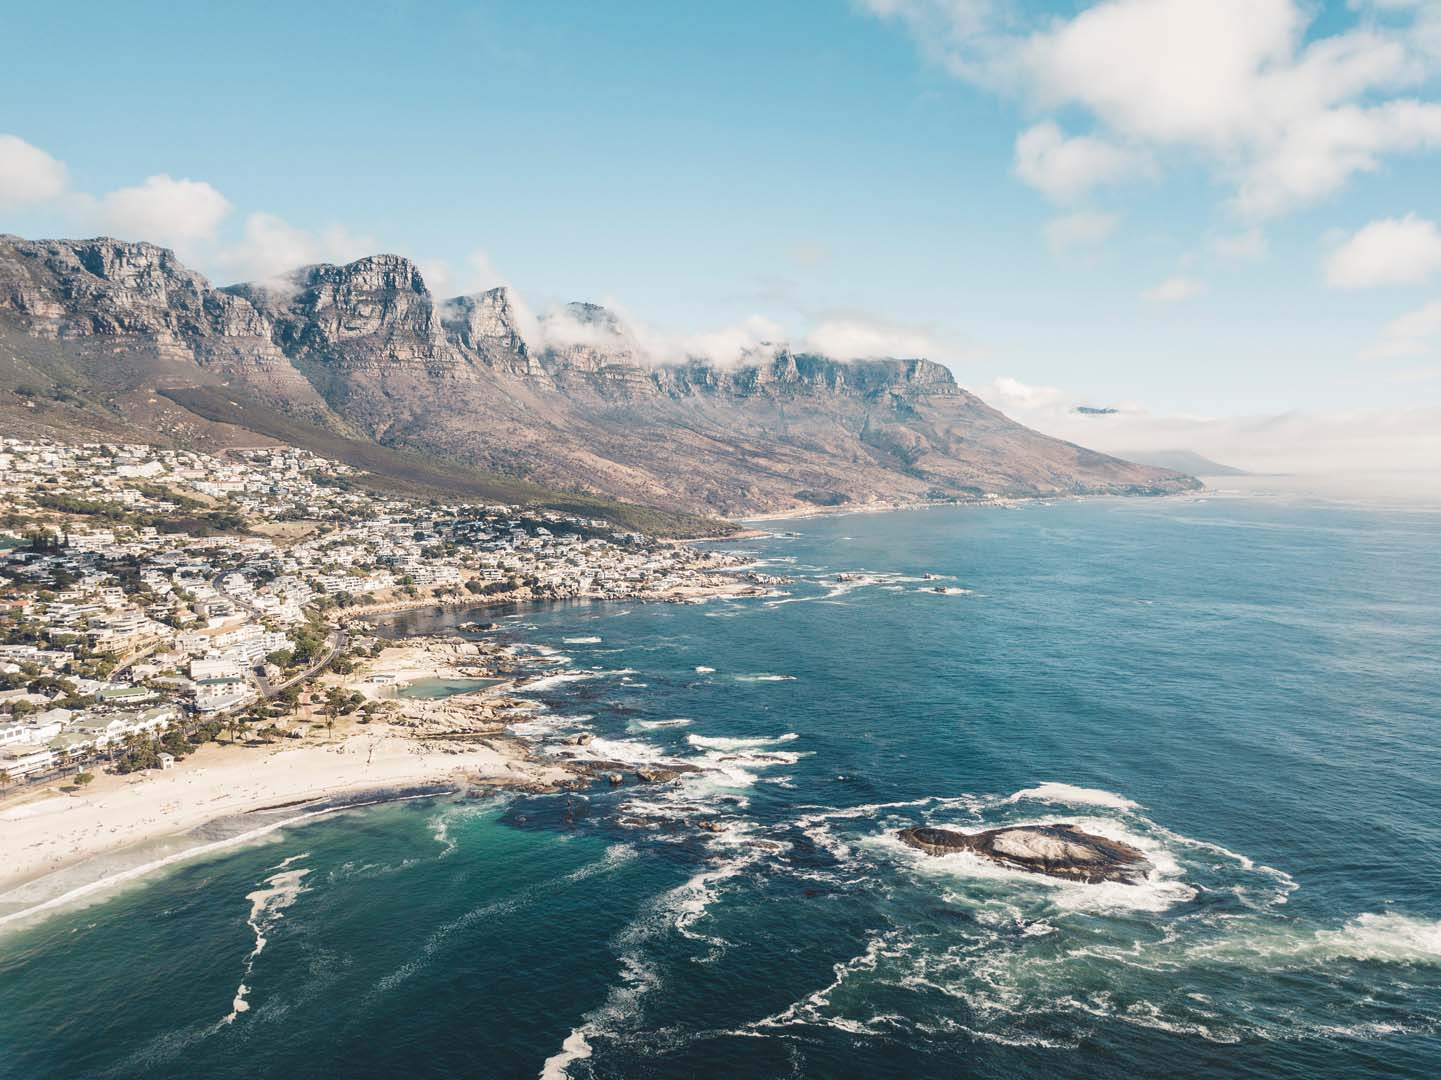 Eskom only signed the latest batch of renewable PPAs after the government intervened (Credit: John O'Nolan / Unsplash)